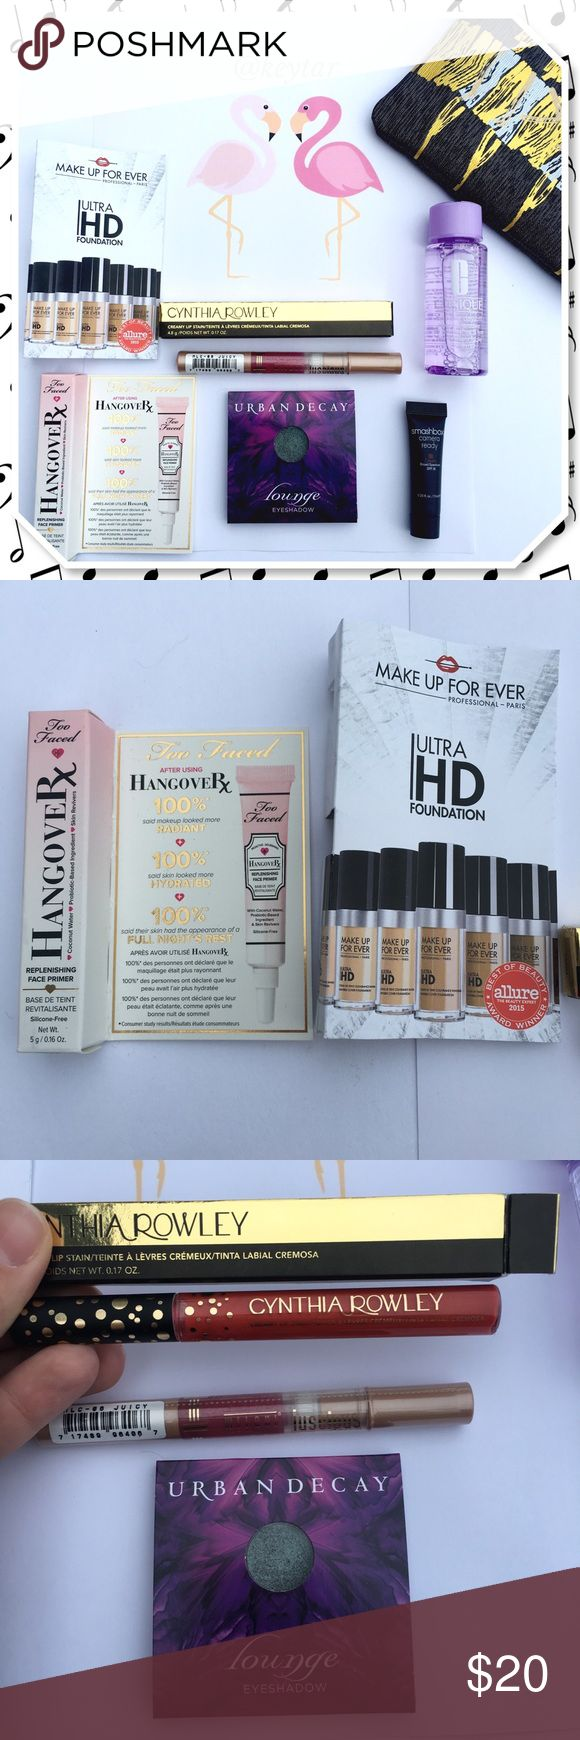 Sephora Makeup Bundle and Makeup Bag Beauty bundle includes:💋💄👄💅📸 Urban Decay-Lounge eyeshadow Too Faced- Hangover Rx primer Ultra HD Foundation Cynthia Rowley- Creamy Lip Stain Milani- luscious lip in Juicy Smashbox- Camera Ready BB cream Clinique- Take the Day off eye makeup remover BONUS!-Small top zip makeup bag!  ⚡️All products are sample size except for the two lip colors which are full size. All unused and unopened. Sephora/Ulta brands quality.  ❌ trades ❌ lowballs 👍offer button…